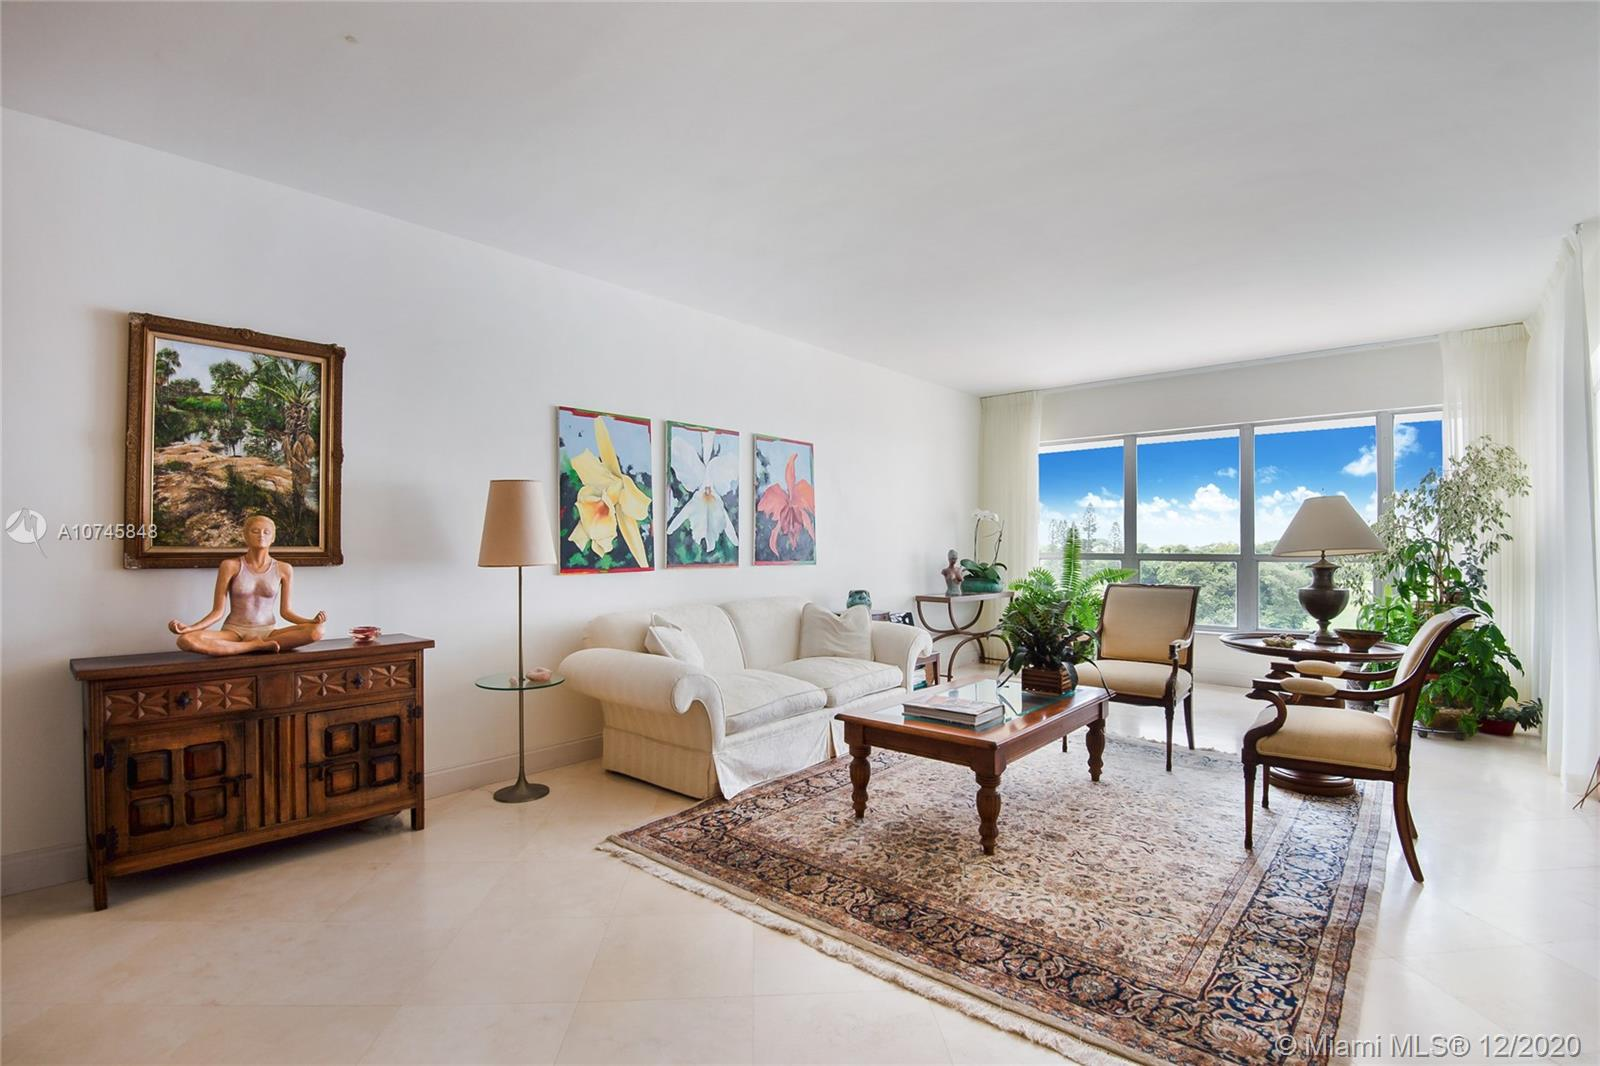 Located on the tip of Bay Harbor Islands, the Blair House is an iconic mid-century modern building with stunning views of Indian Creek, Downtown Miami, and the open/tranquil waters of Biscayne Bay.  This corner unit has one bedroom, one and a half baths (could be converted into a two bedroom), marble floors, formal foyer, and one storage unit w/ assigned parking. INCREDIBLE VIEWS from the sixth floor apartment.  Beautiful and sprawling pool area, gym, and totally remodeled common areas.  A short walk to local restaurants, dog park, Bal Harbour Shops, and the beaches.  A-rated school district and and an amazing lifestyle to call your own.